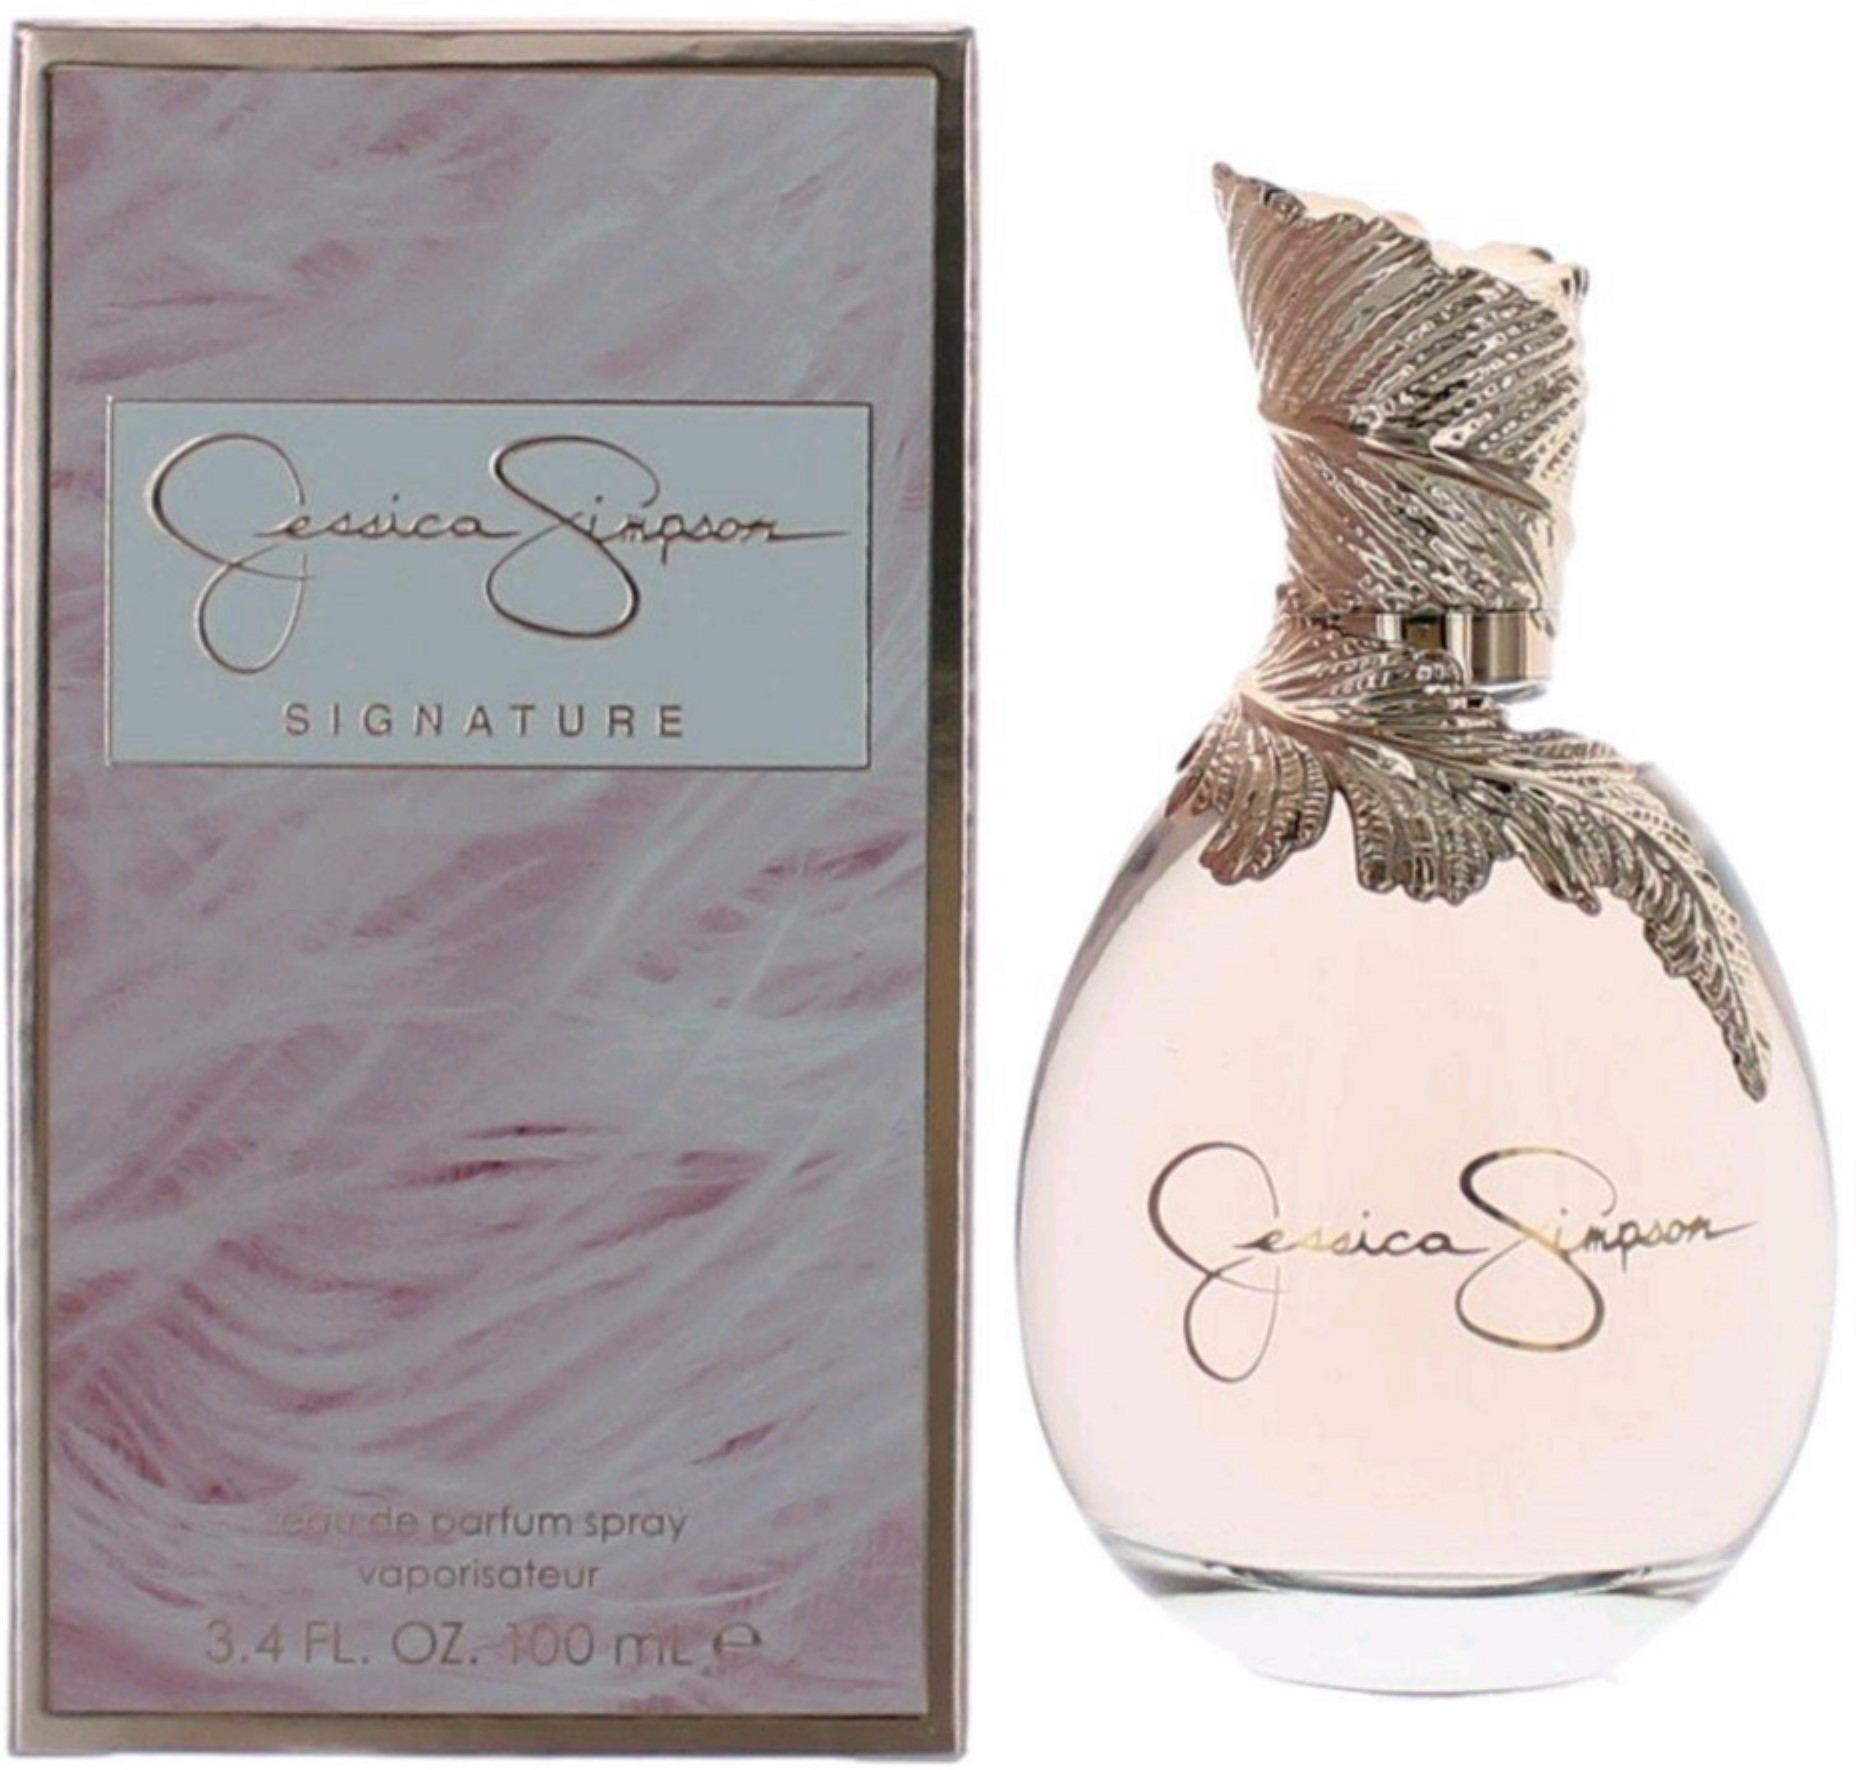 3 Pack - Signature By Jessica Simpson Eau de Parfum Spray 3.4 oz